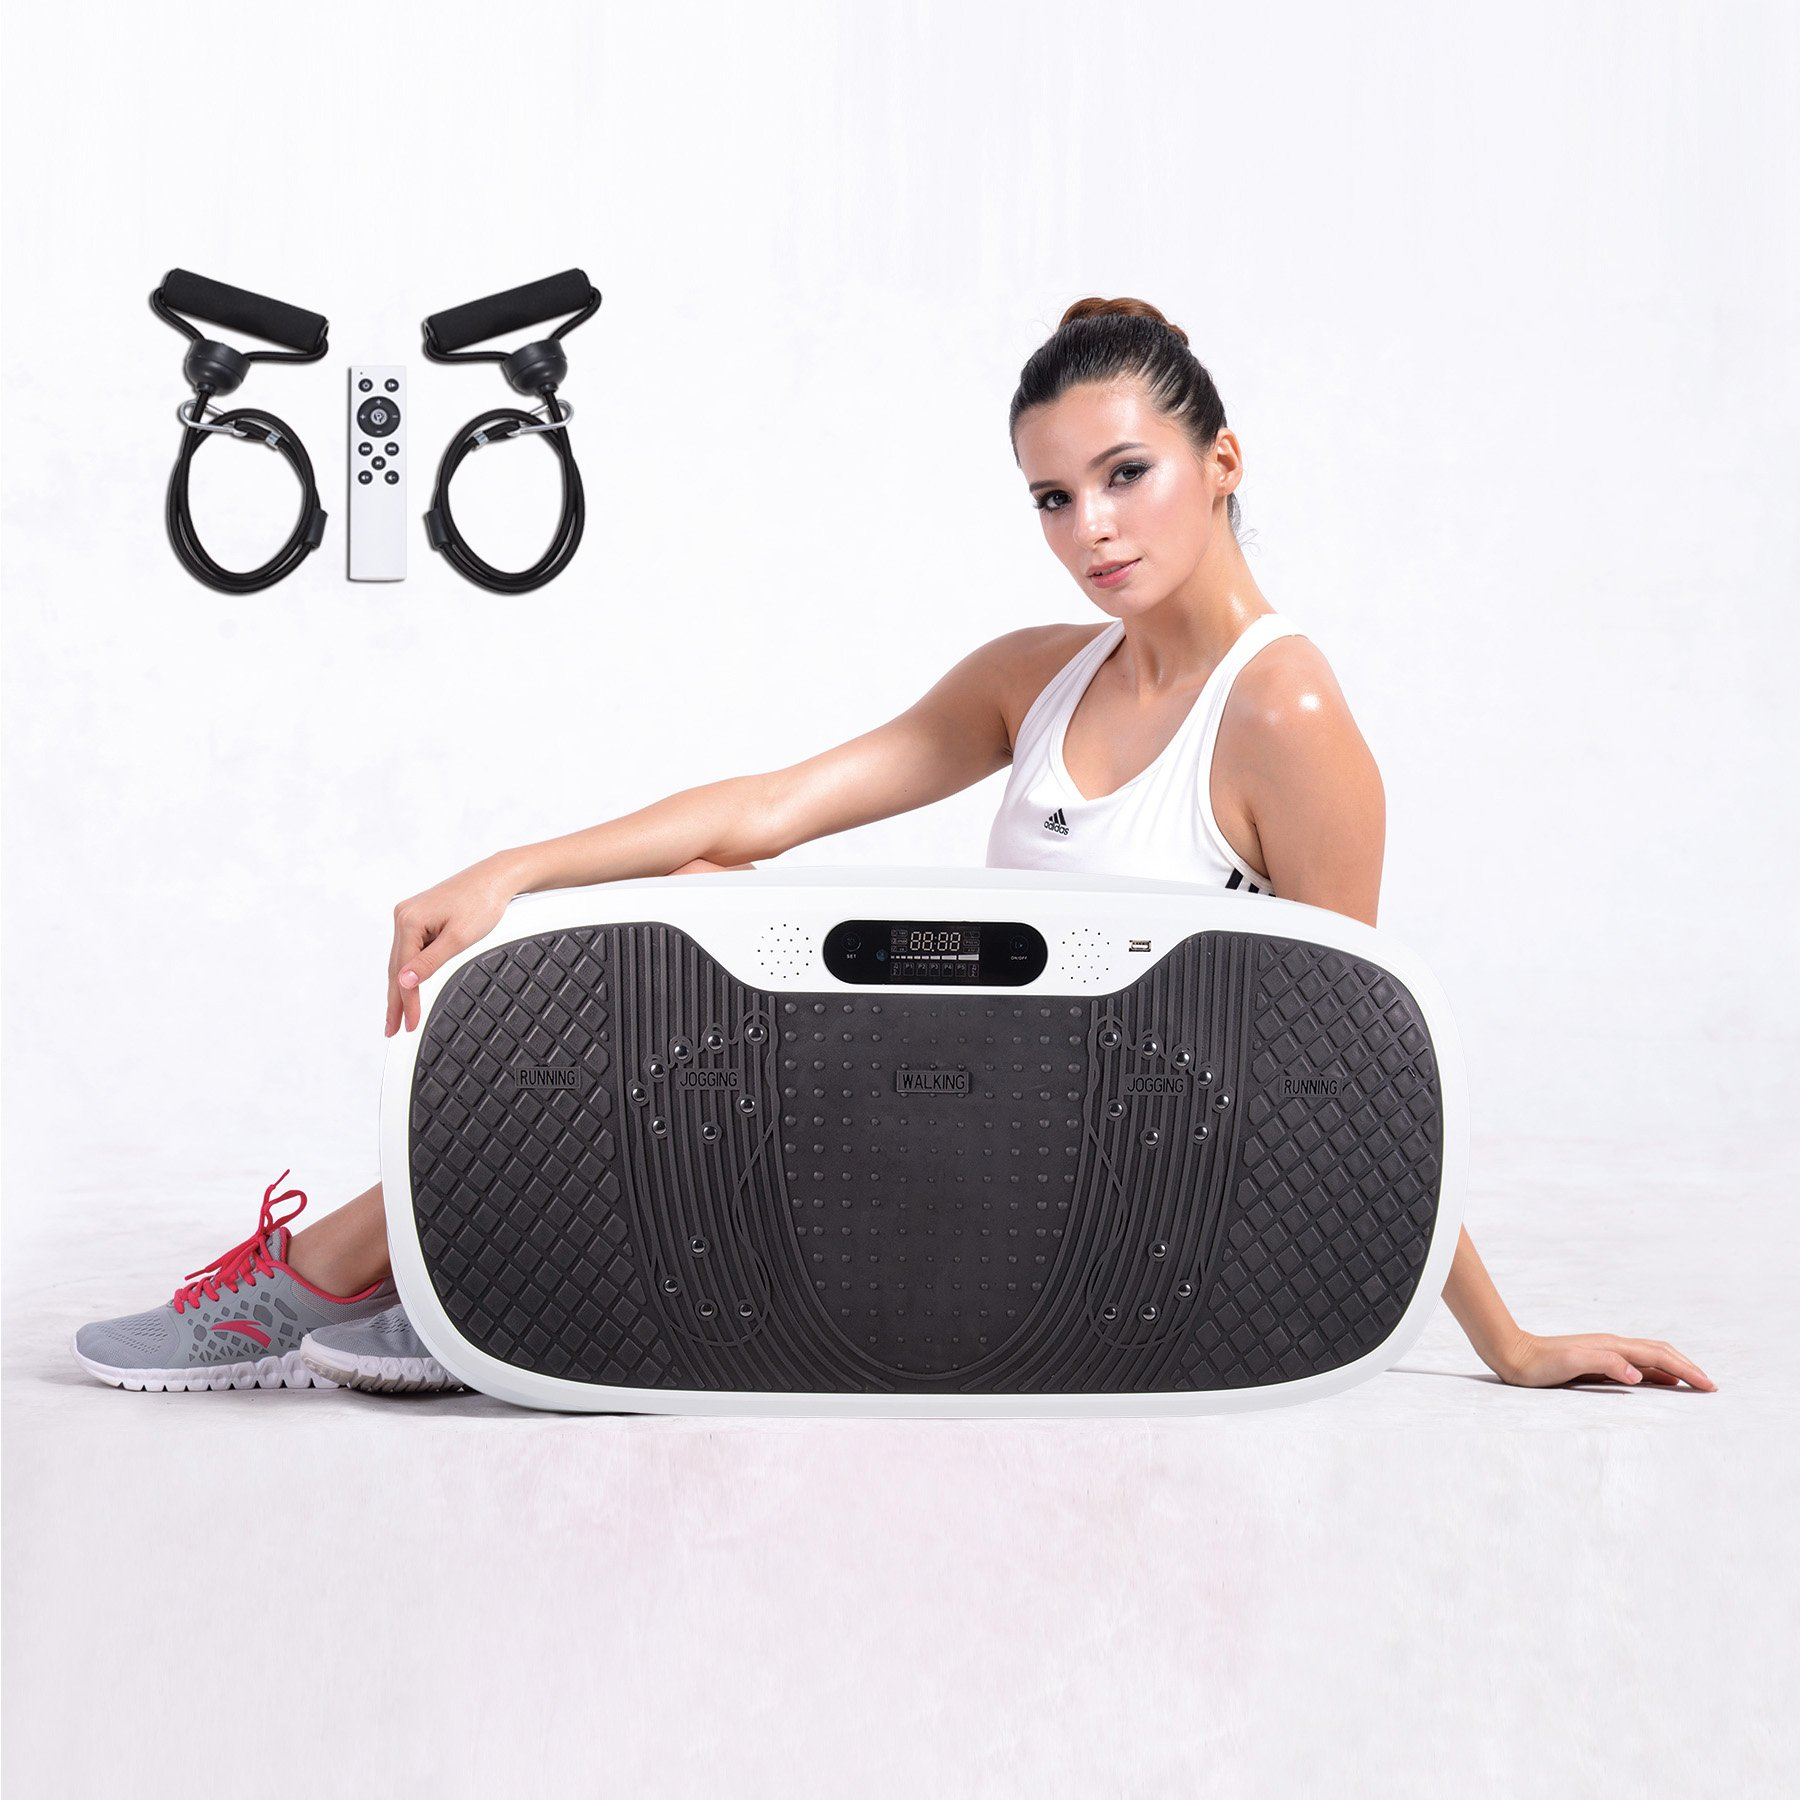 Pinty Full Body Vibration Platform Fitness Vibration Machine with MP3 Player & 3 Standing Positions